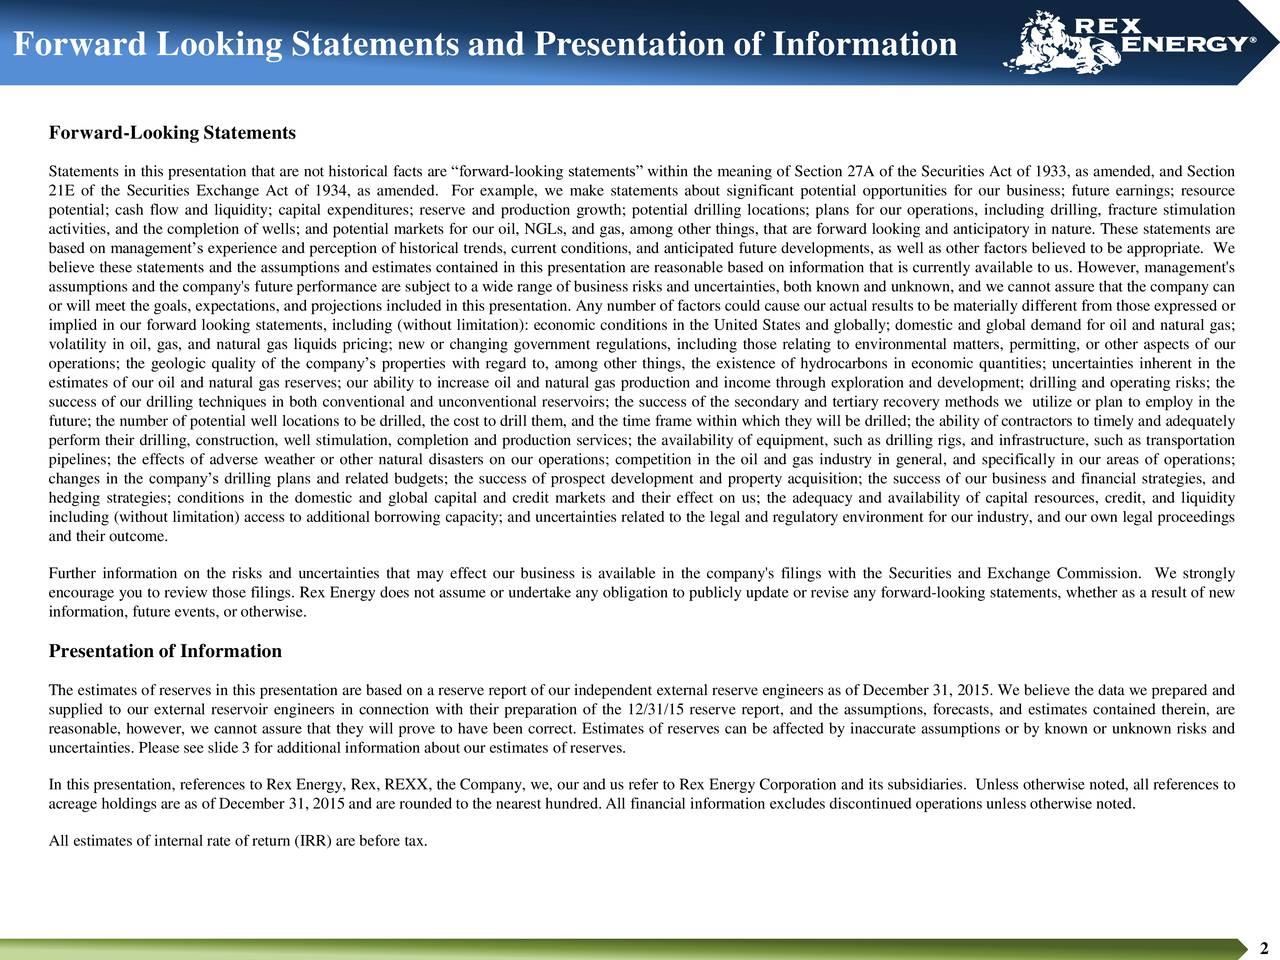 Forward-Looking Statements Statements in this presentation that are not historical facts are forward-looking statements within the meaning of Section 27A of the Securities Act of 1933, as amended, and Section 21E of the Securities Exchange Act of 1934, as amended. For example, we make statements about significant potential opportunities for our business; future earnings; resource potential; cash flow and liquidity; capital expenditures; reserve and production growth; potential drilling locations; plans for our operations, including drilling, fracture stimulation activities, and the completion of wells; and potential markets for our oil, NGLs, and gas, among other things, that are forward looking and anticipatory in nature. These statements are based on managements experience and perception of historical trends, current conditions, and anticipated future developments, as well as other factors believed to be appropriate. We believe these statements and the assumptions and estimates contained in this presentation are reasonable based on information that is currently available to us. However, management's assumptions and the company's future performance are subject to a wide range of business risks and uncertainties, both known and unknown, and we cannot assure that the company can or will meet the goals, expectations, and projections included in this presentation. Any number of factors could cause our actual results to be materially different from those expressed or implied in our forward looking statements, including (without limitation): economic conditions in the United States and globally; domestic and global demand for oil and natural gas; volatility in oil, gas, and natural gas liquids pricing; new or changing government regulations, including those relating to environmental matters, permitting, or other aspects of our operations; the geologic quality of the companys properties with regard to, among other things, the existence of hydrocarbons in economic quantiti